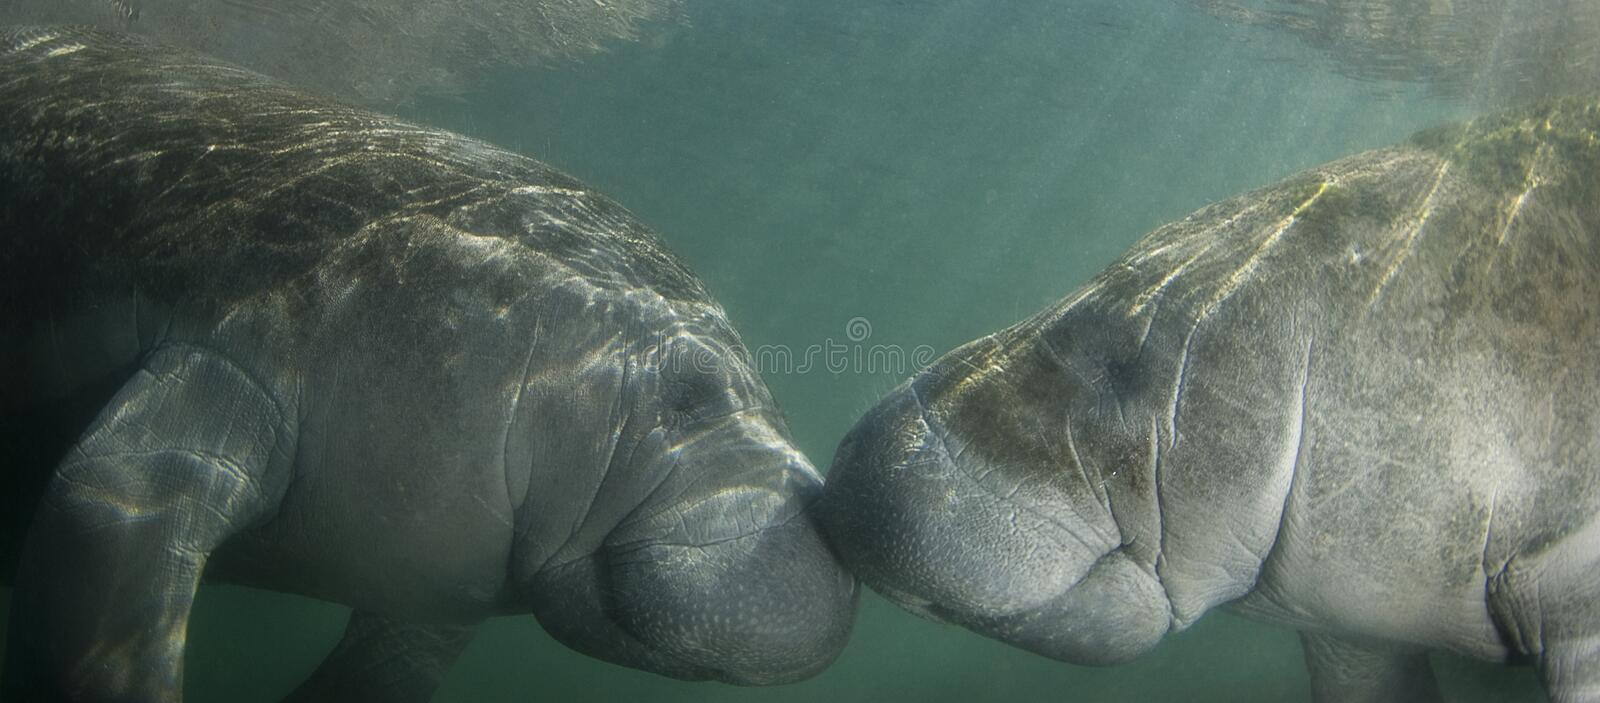 Kissing Manatees. Two endangered Florida Manatee (Trichechus manatus latirostrus) nose to nose as the sun shines down on them in the springs of Crystal River